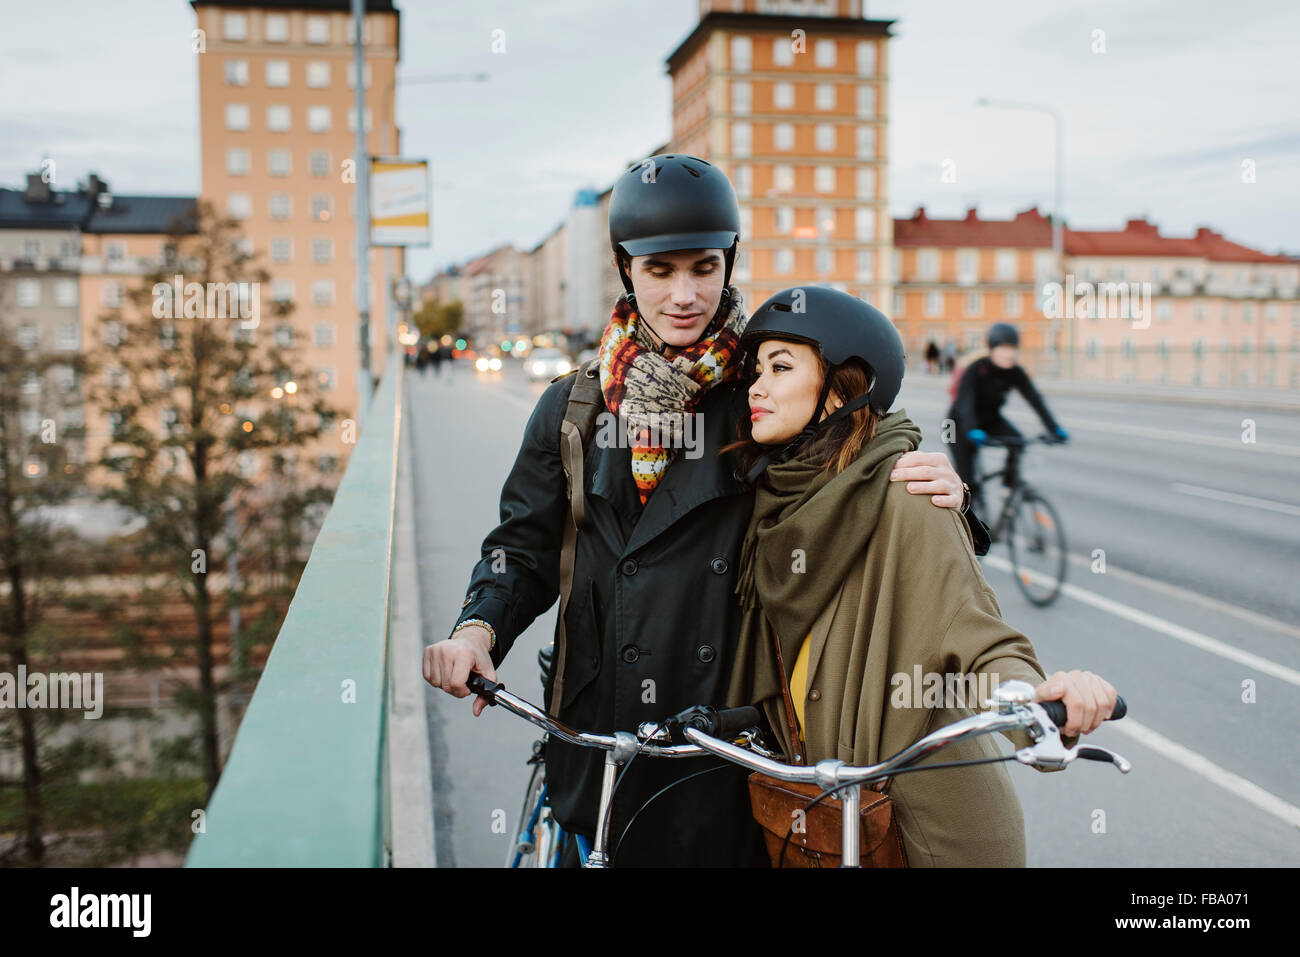 Sweden, Uppland, Stockholm, Vasatan, Sankt Eriksgatan, Young couple with bicycles on street Stock Photo